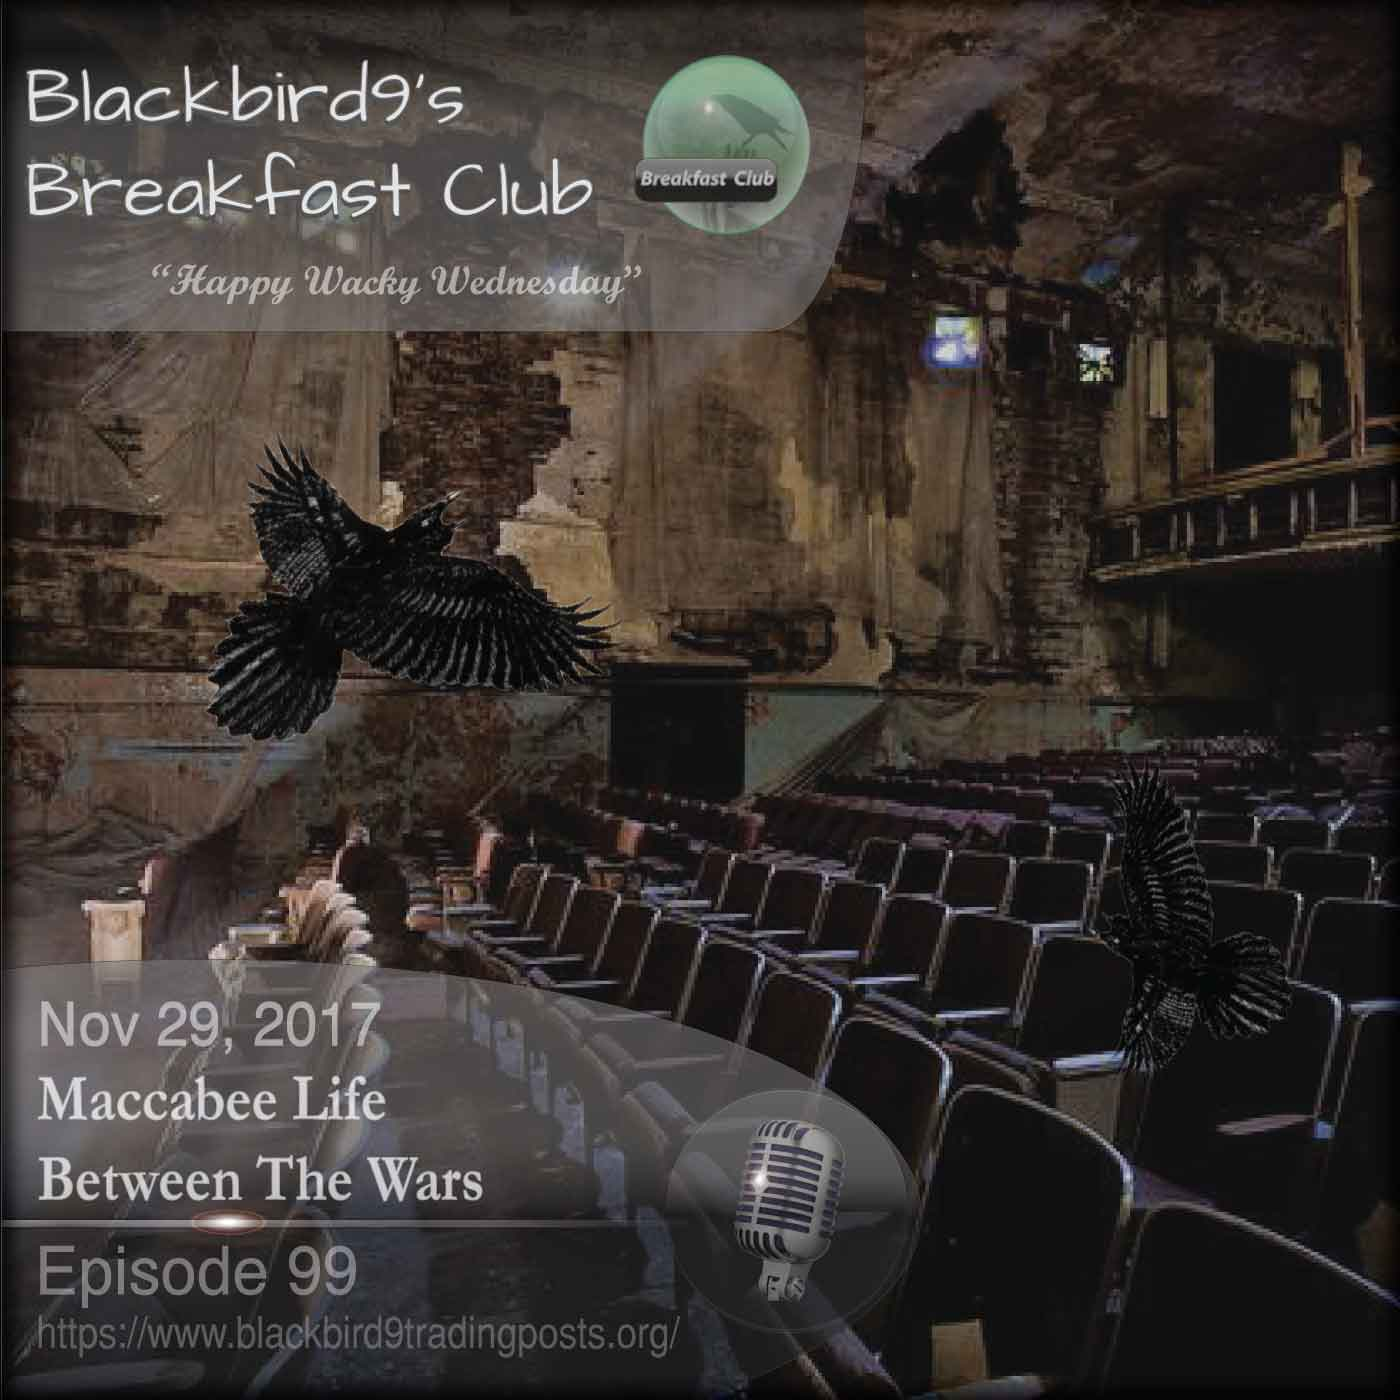 Maccabee Life Between The Wars - Blackbird9